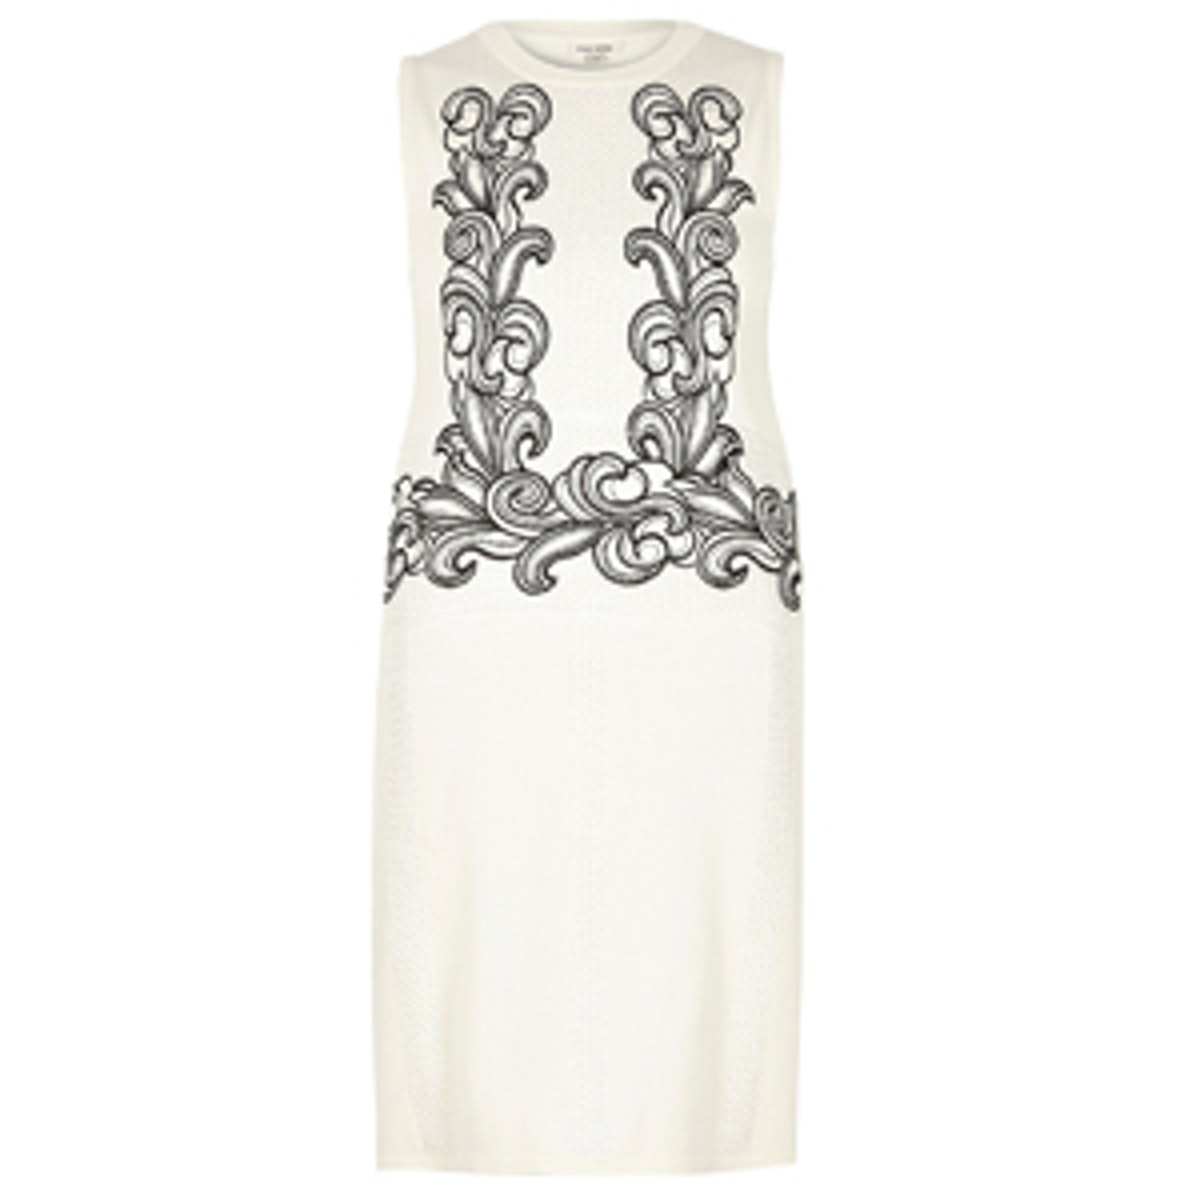 Knitted Embroidered Dress